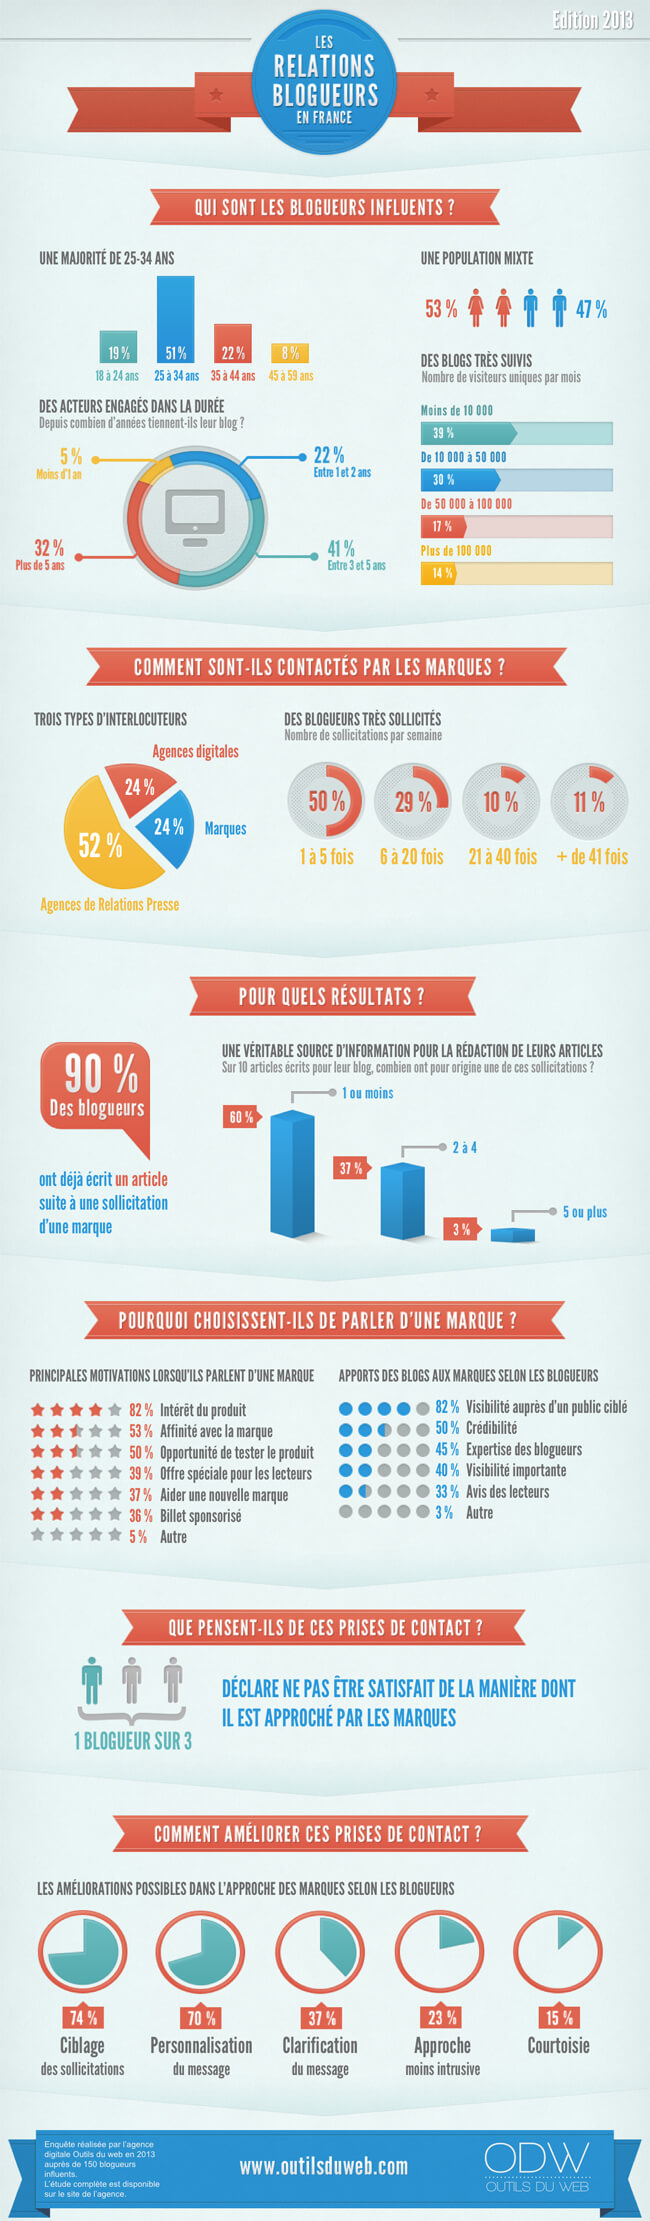 infographie relations blogueurs